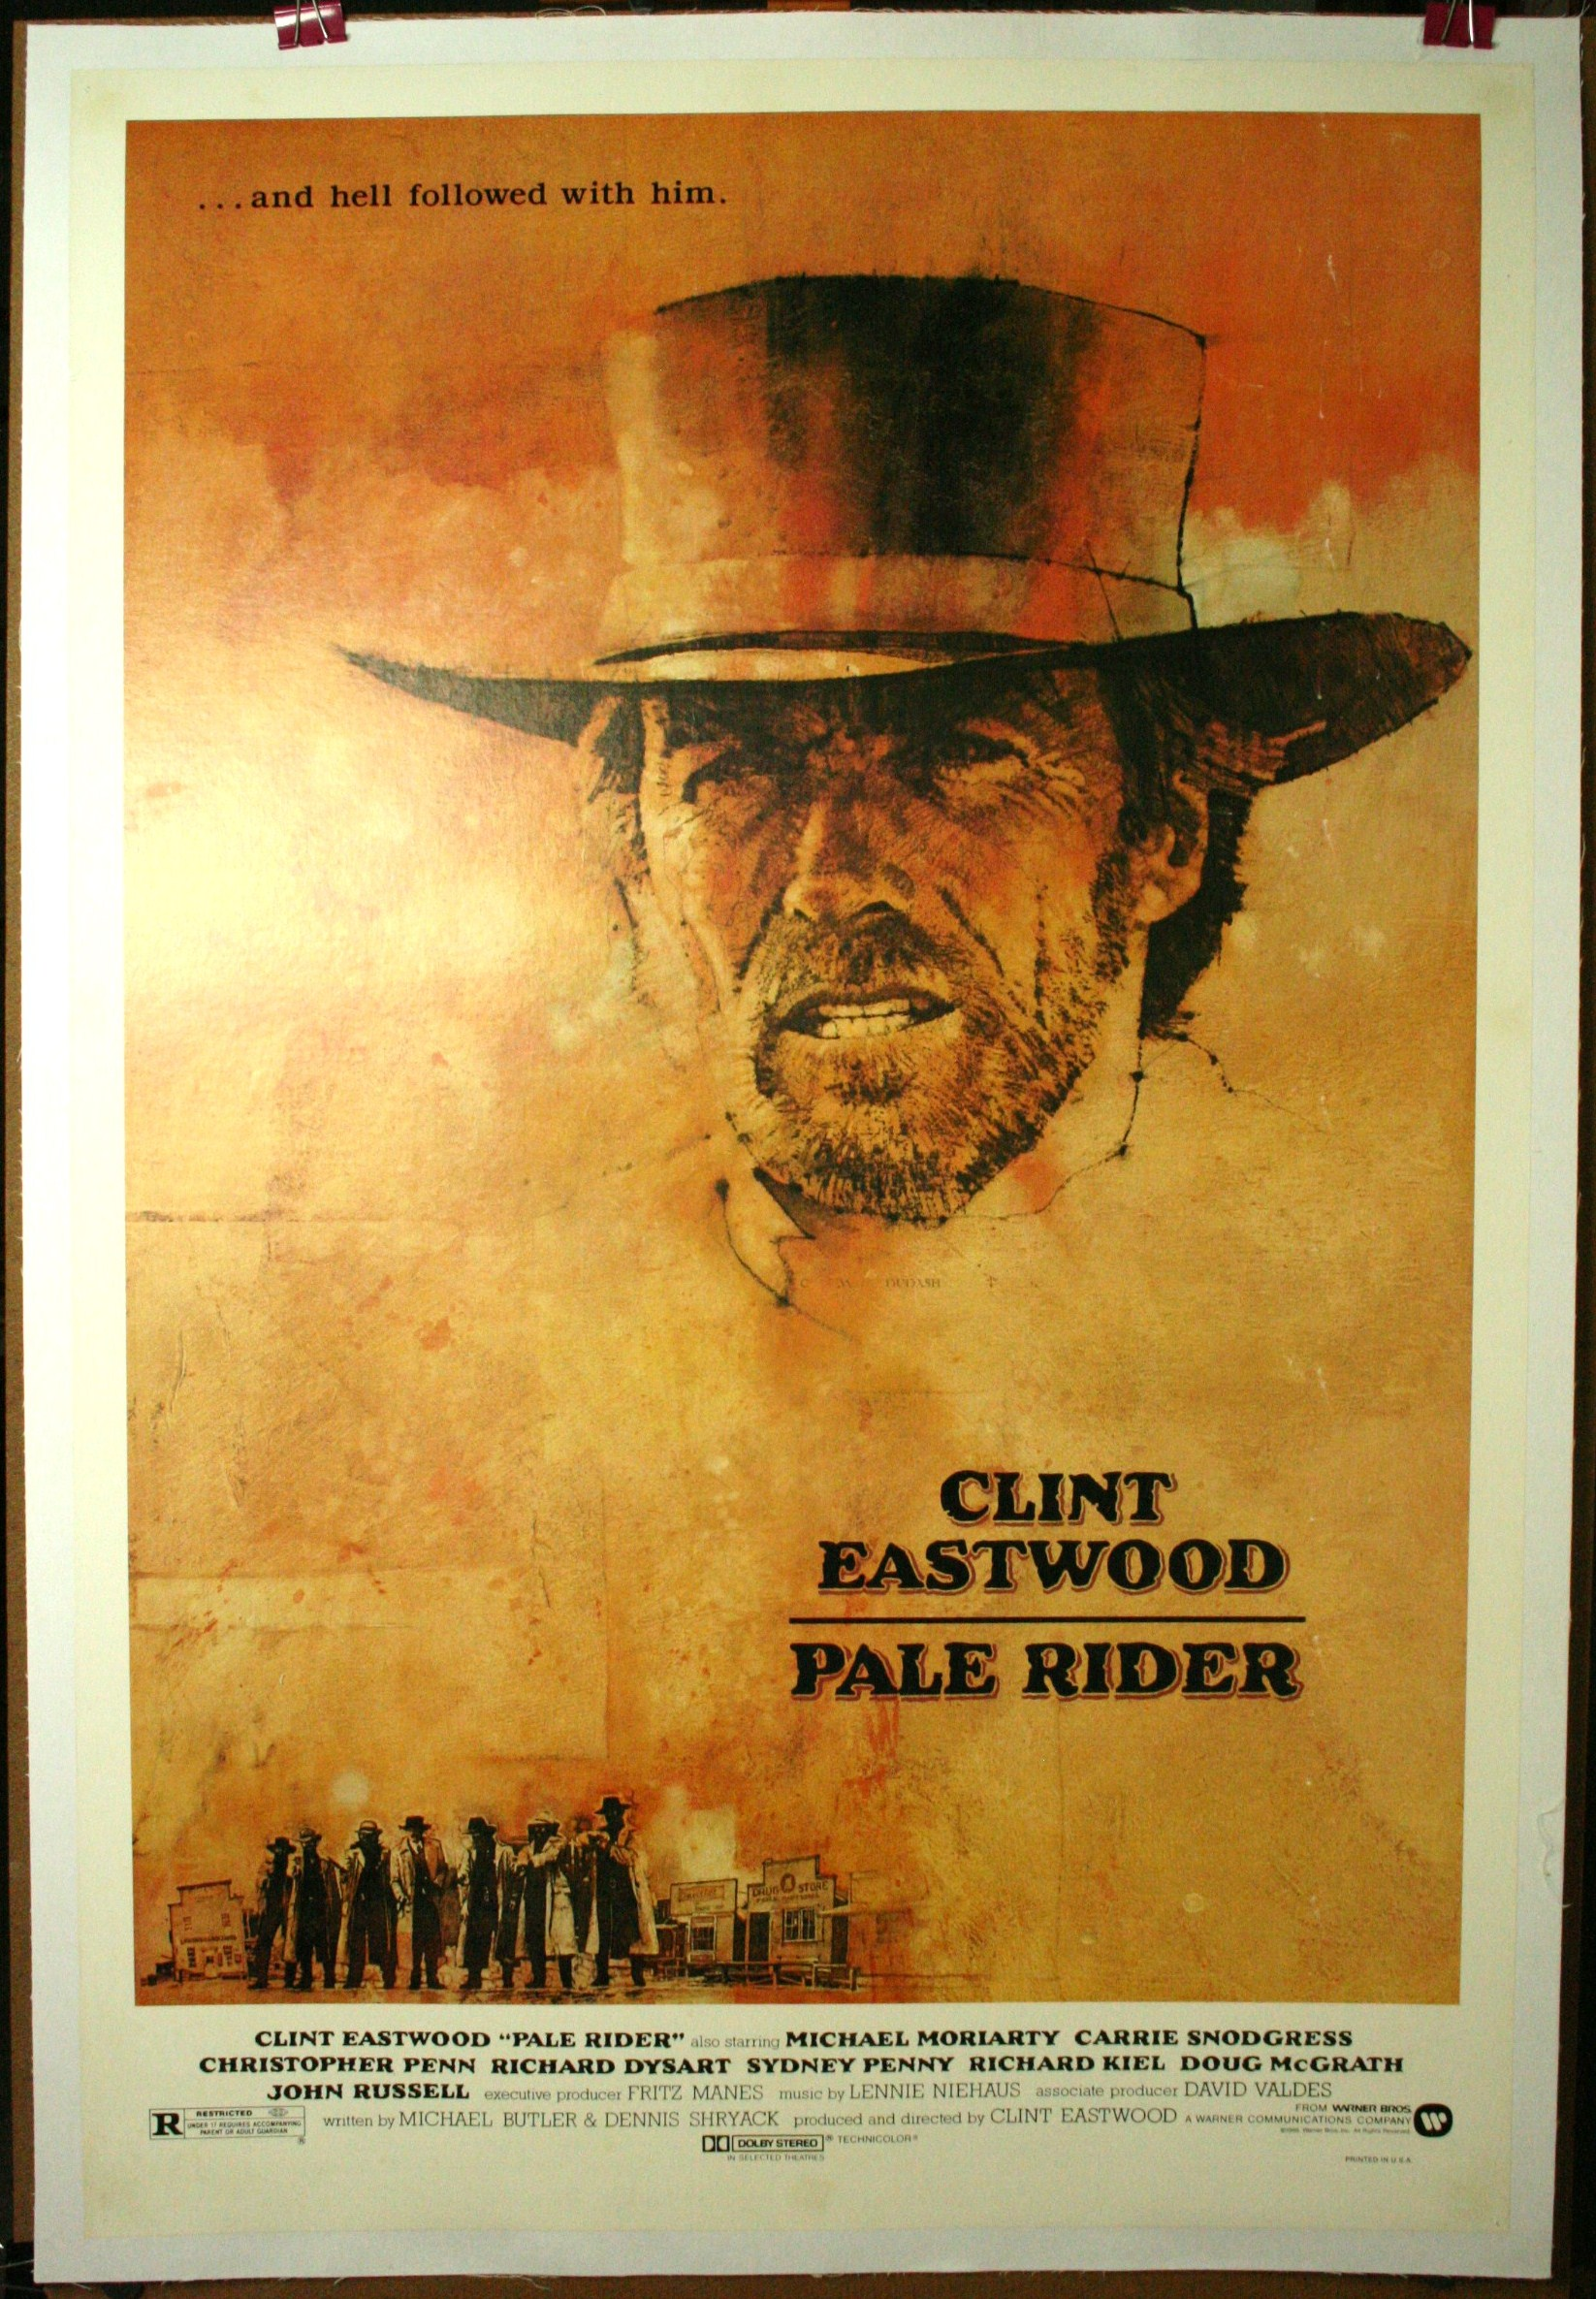 pale rider � clint eastwood western poster on linen